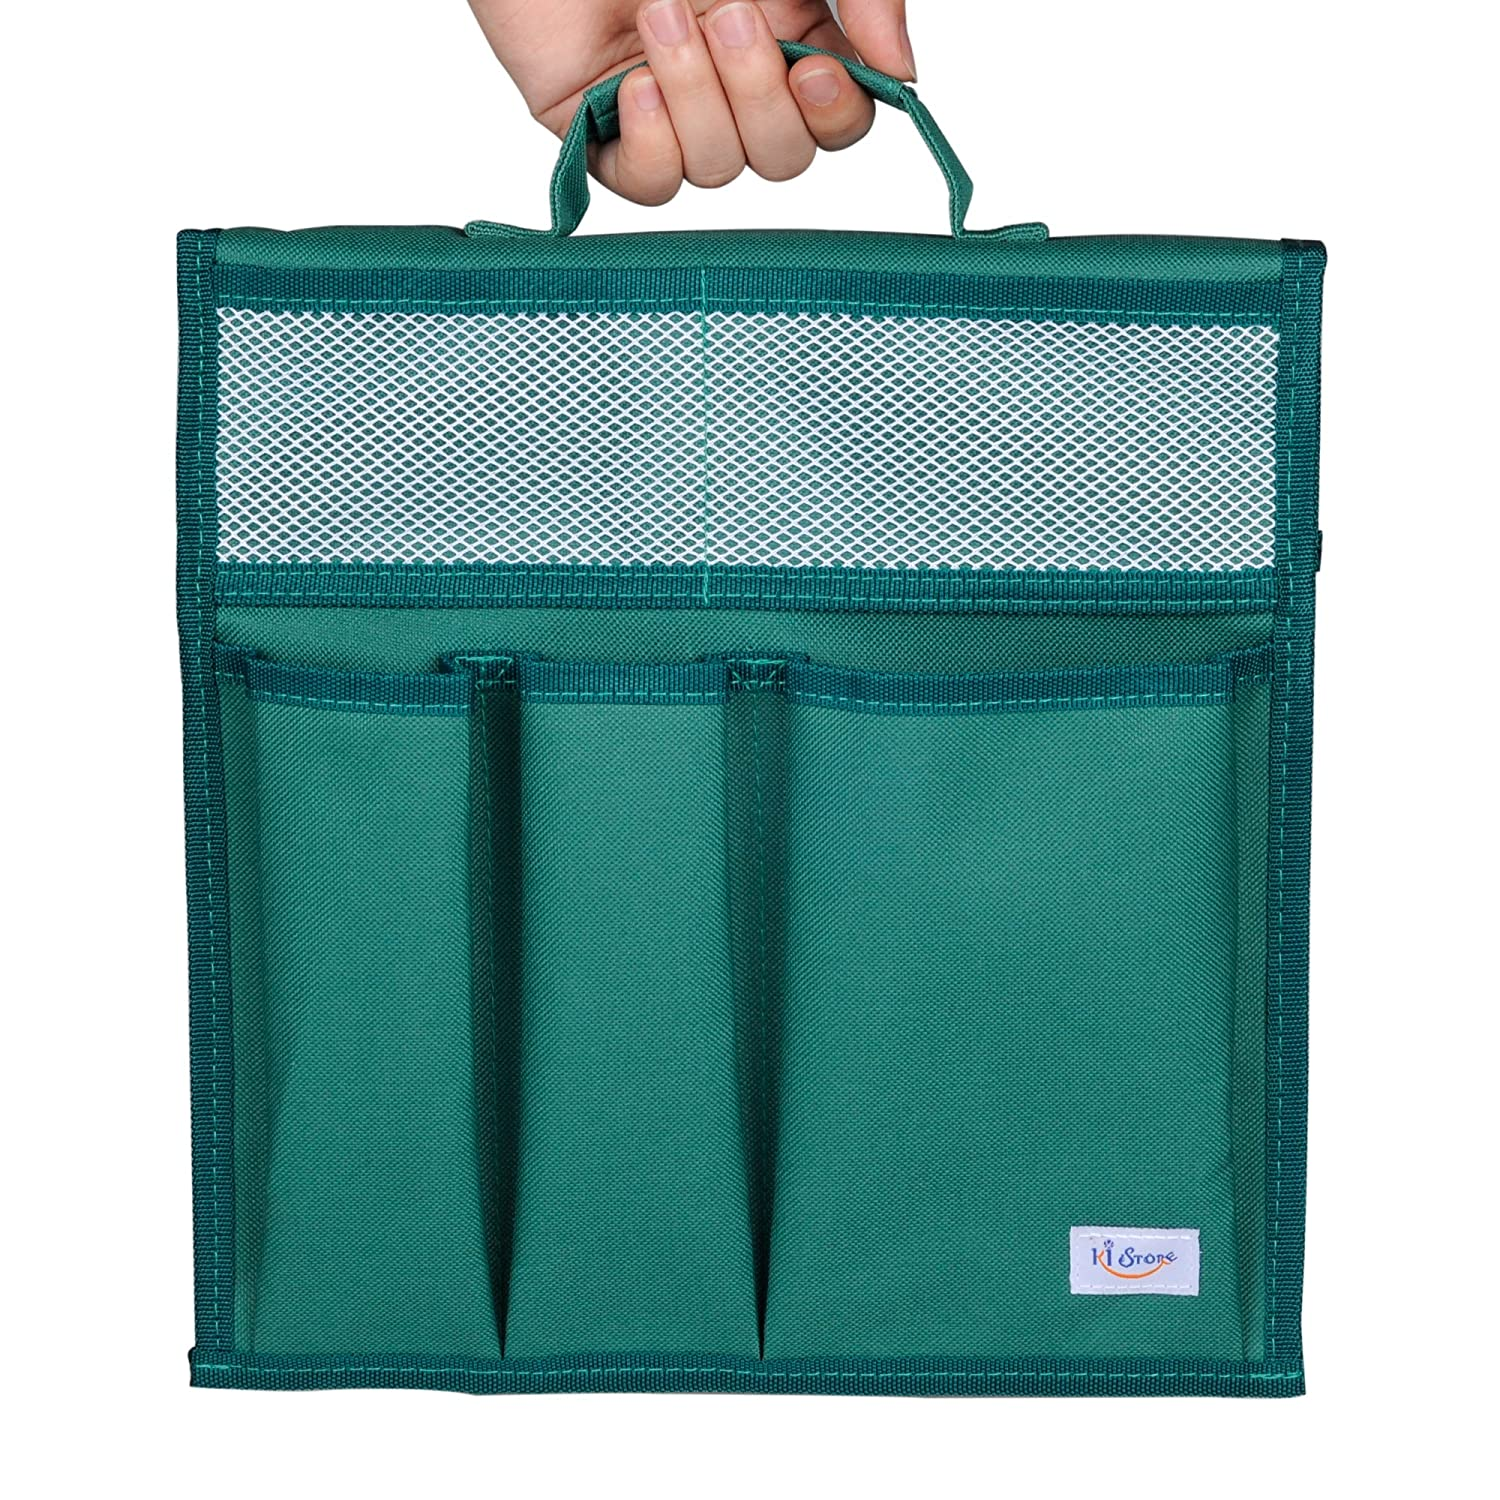 KI Store Garden Kneeler Tool Pouch Bag with Handle for Gardening and Household Organizer (Forest Green)